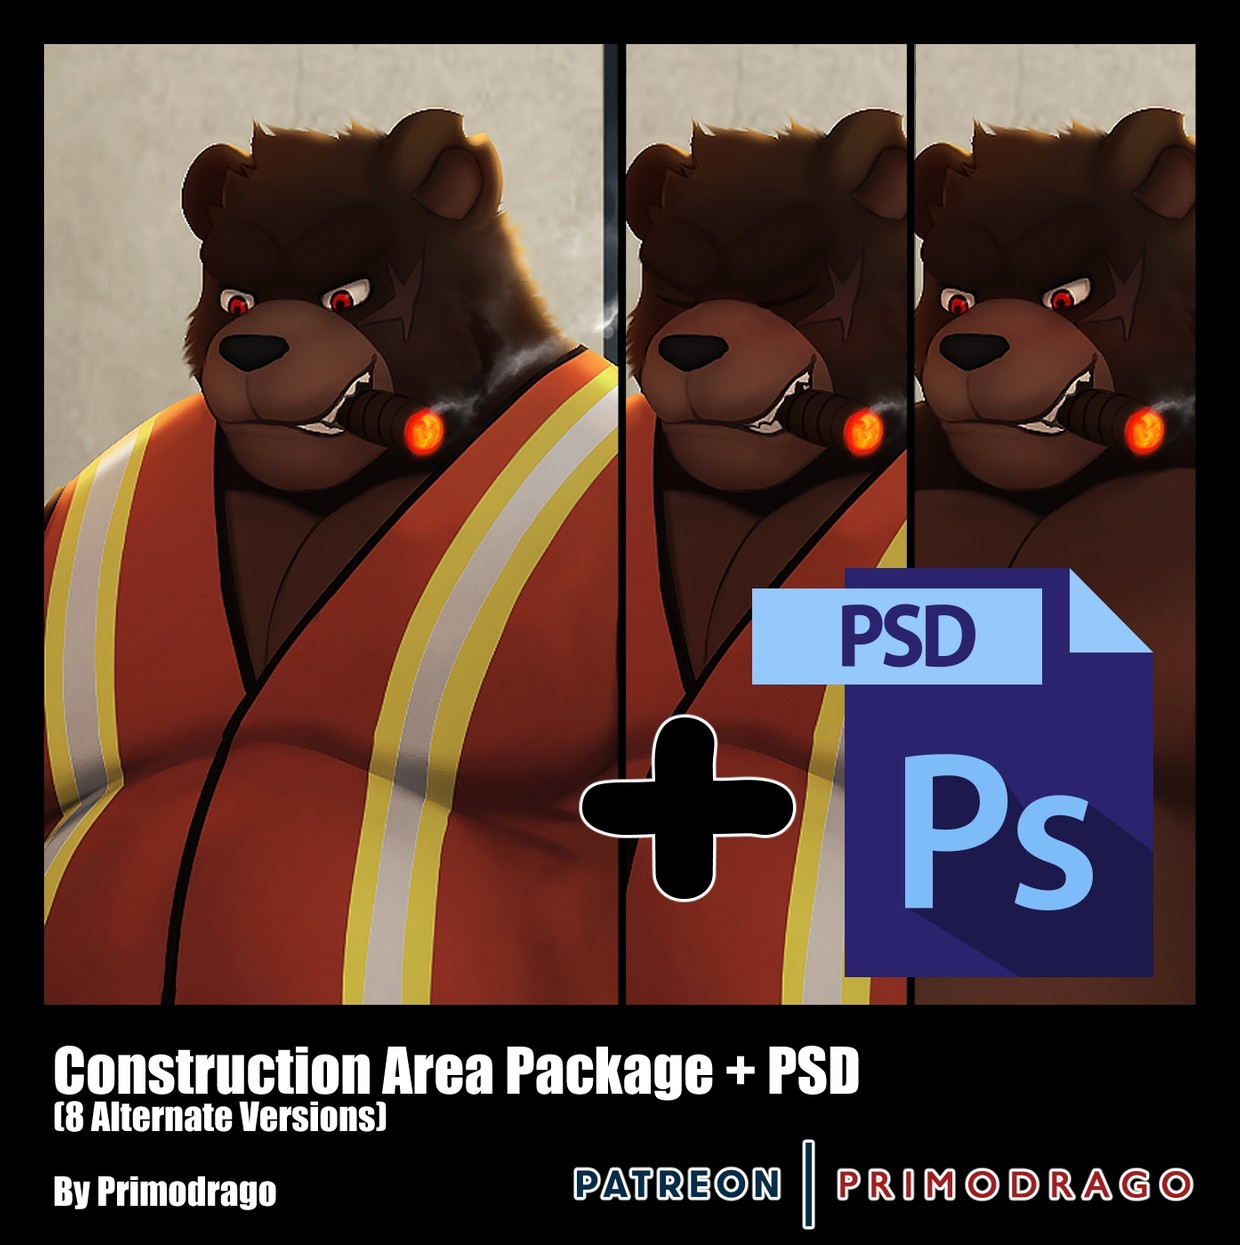 Construction Area Theme + PSD File